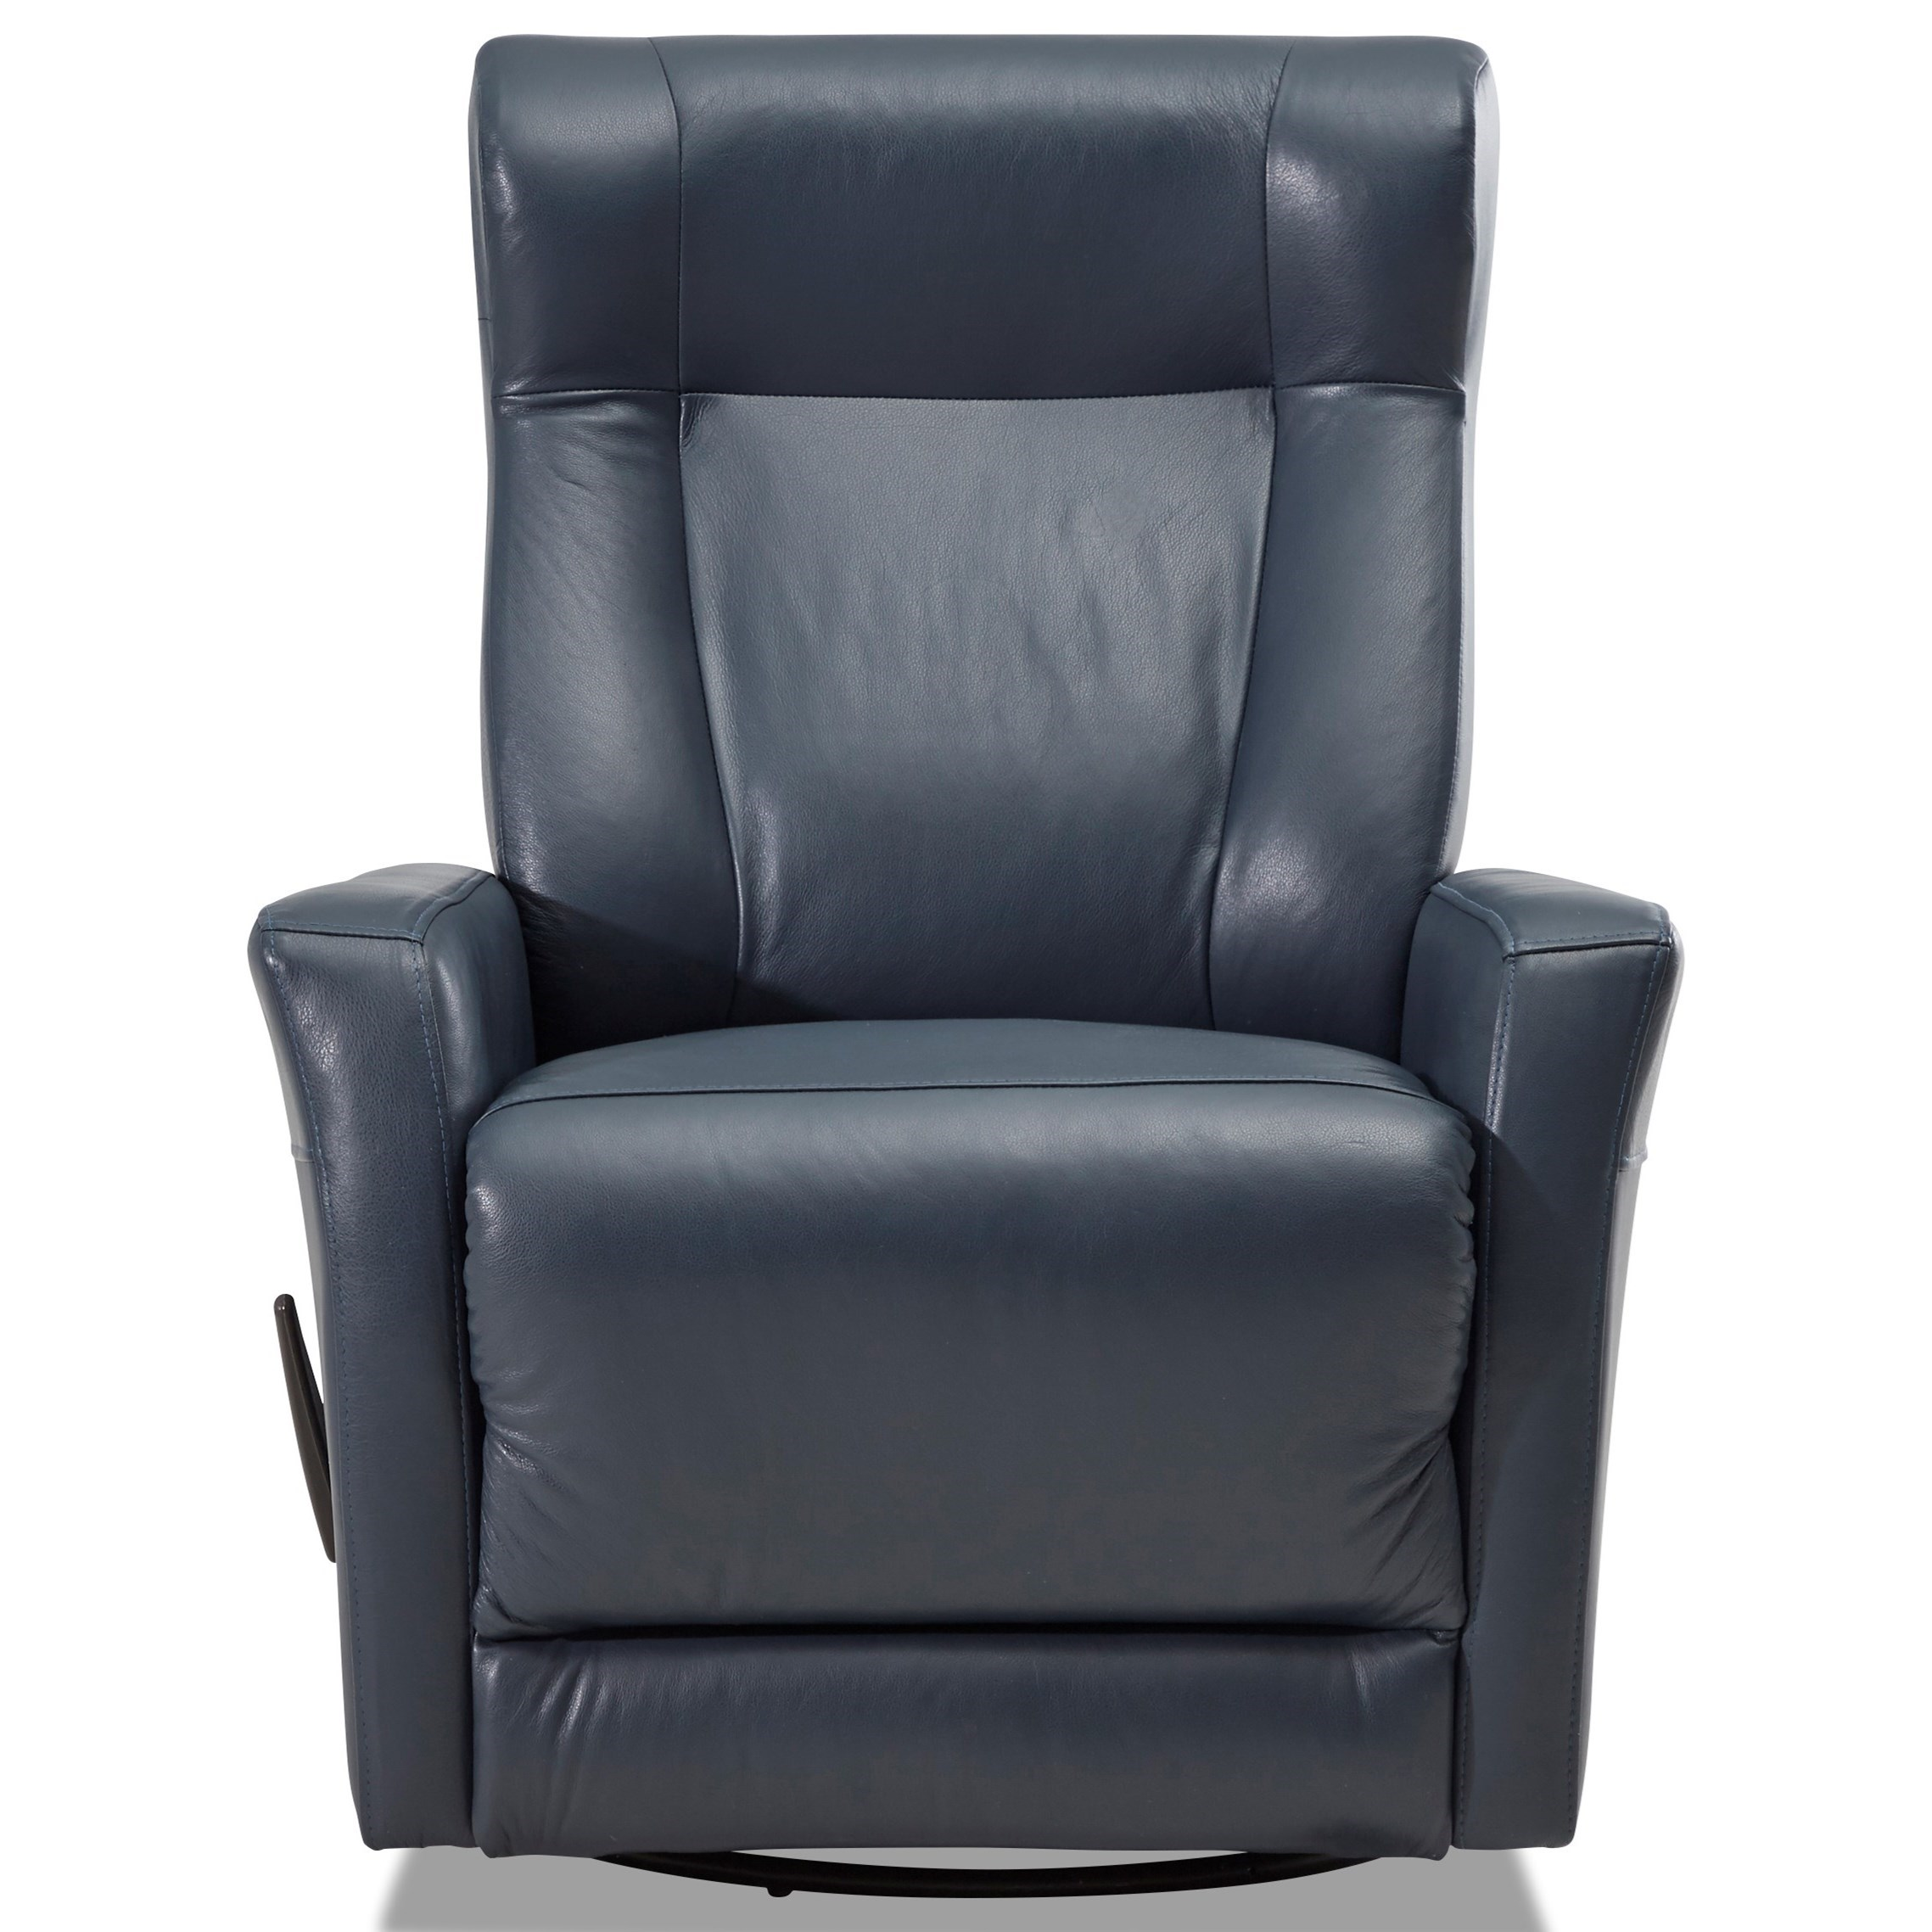 Mercury Manual Reclining Rocking Chair  by Klaussner at Johnny Janosik